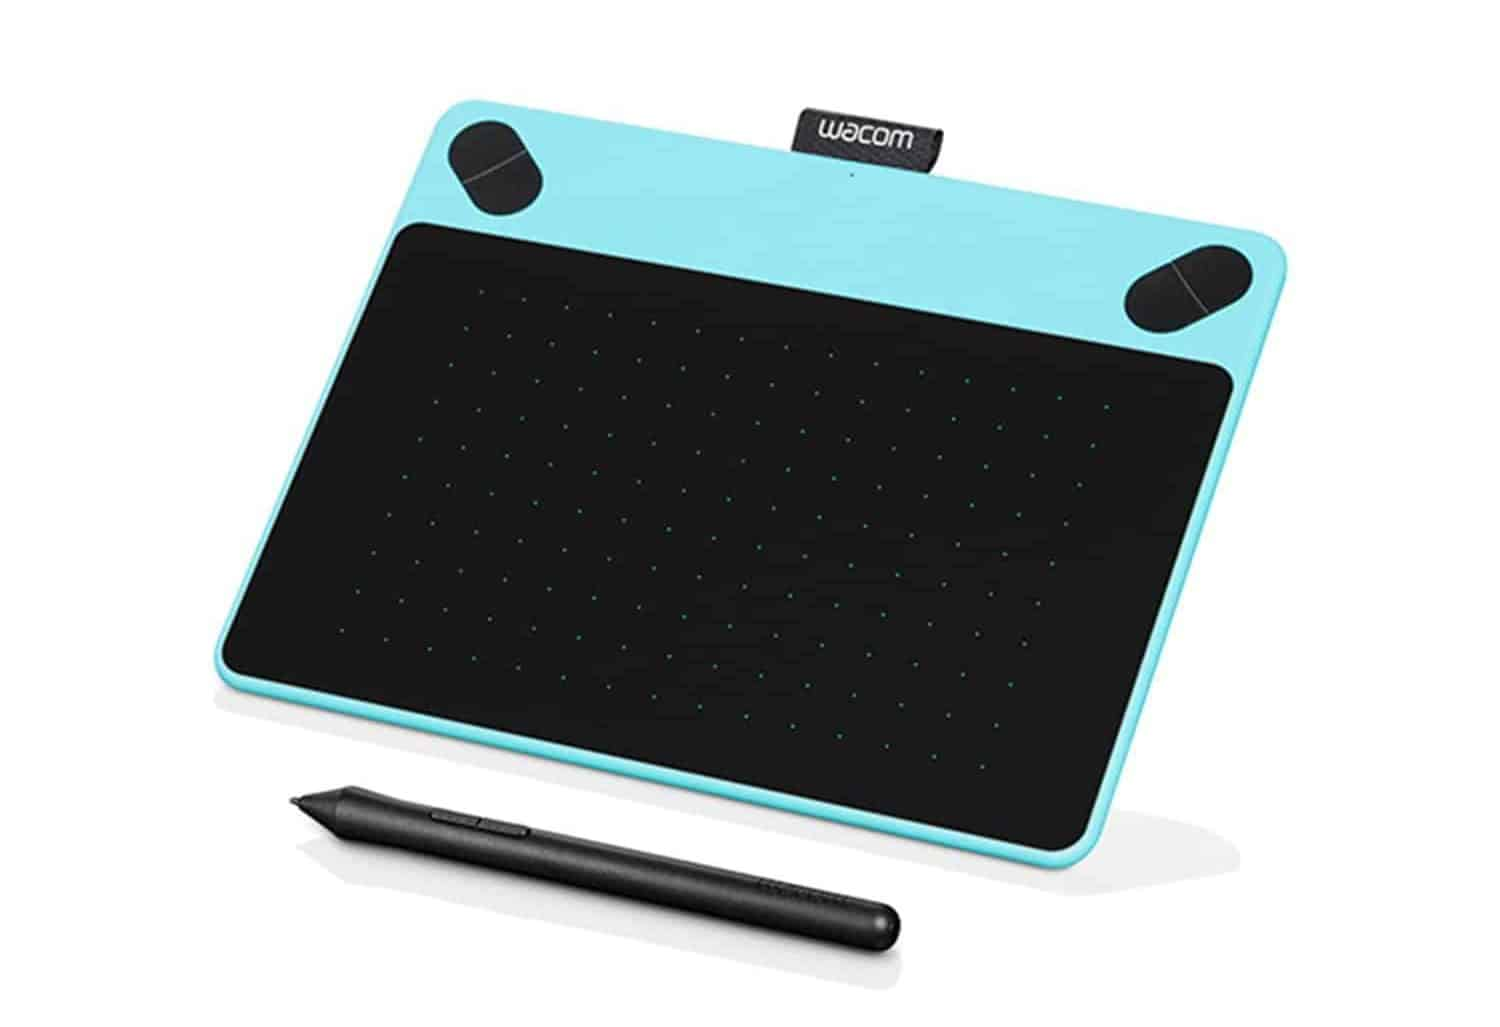 Especial Pen Tablets 2018 Wacom Intuos Pen Touch Small Tablet Cth480 Certified Refurbished Wacom Intuos Pen Graphic Designers Touch Small Tablet Tutorial dpreview Wacom Intuos Pen And Touch Small Tablet